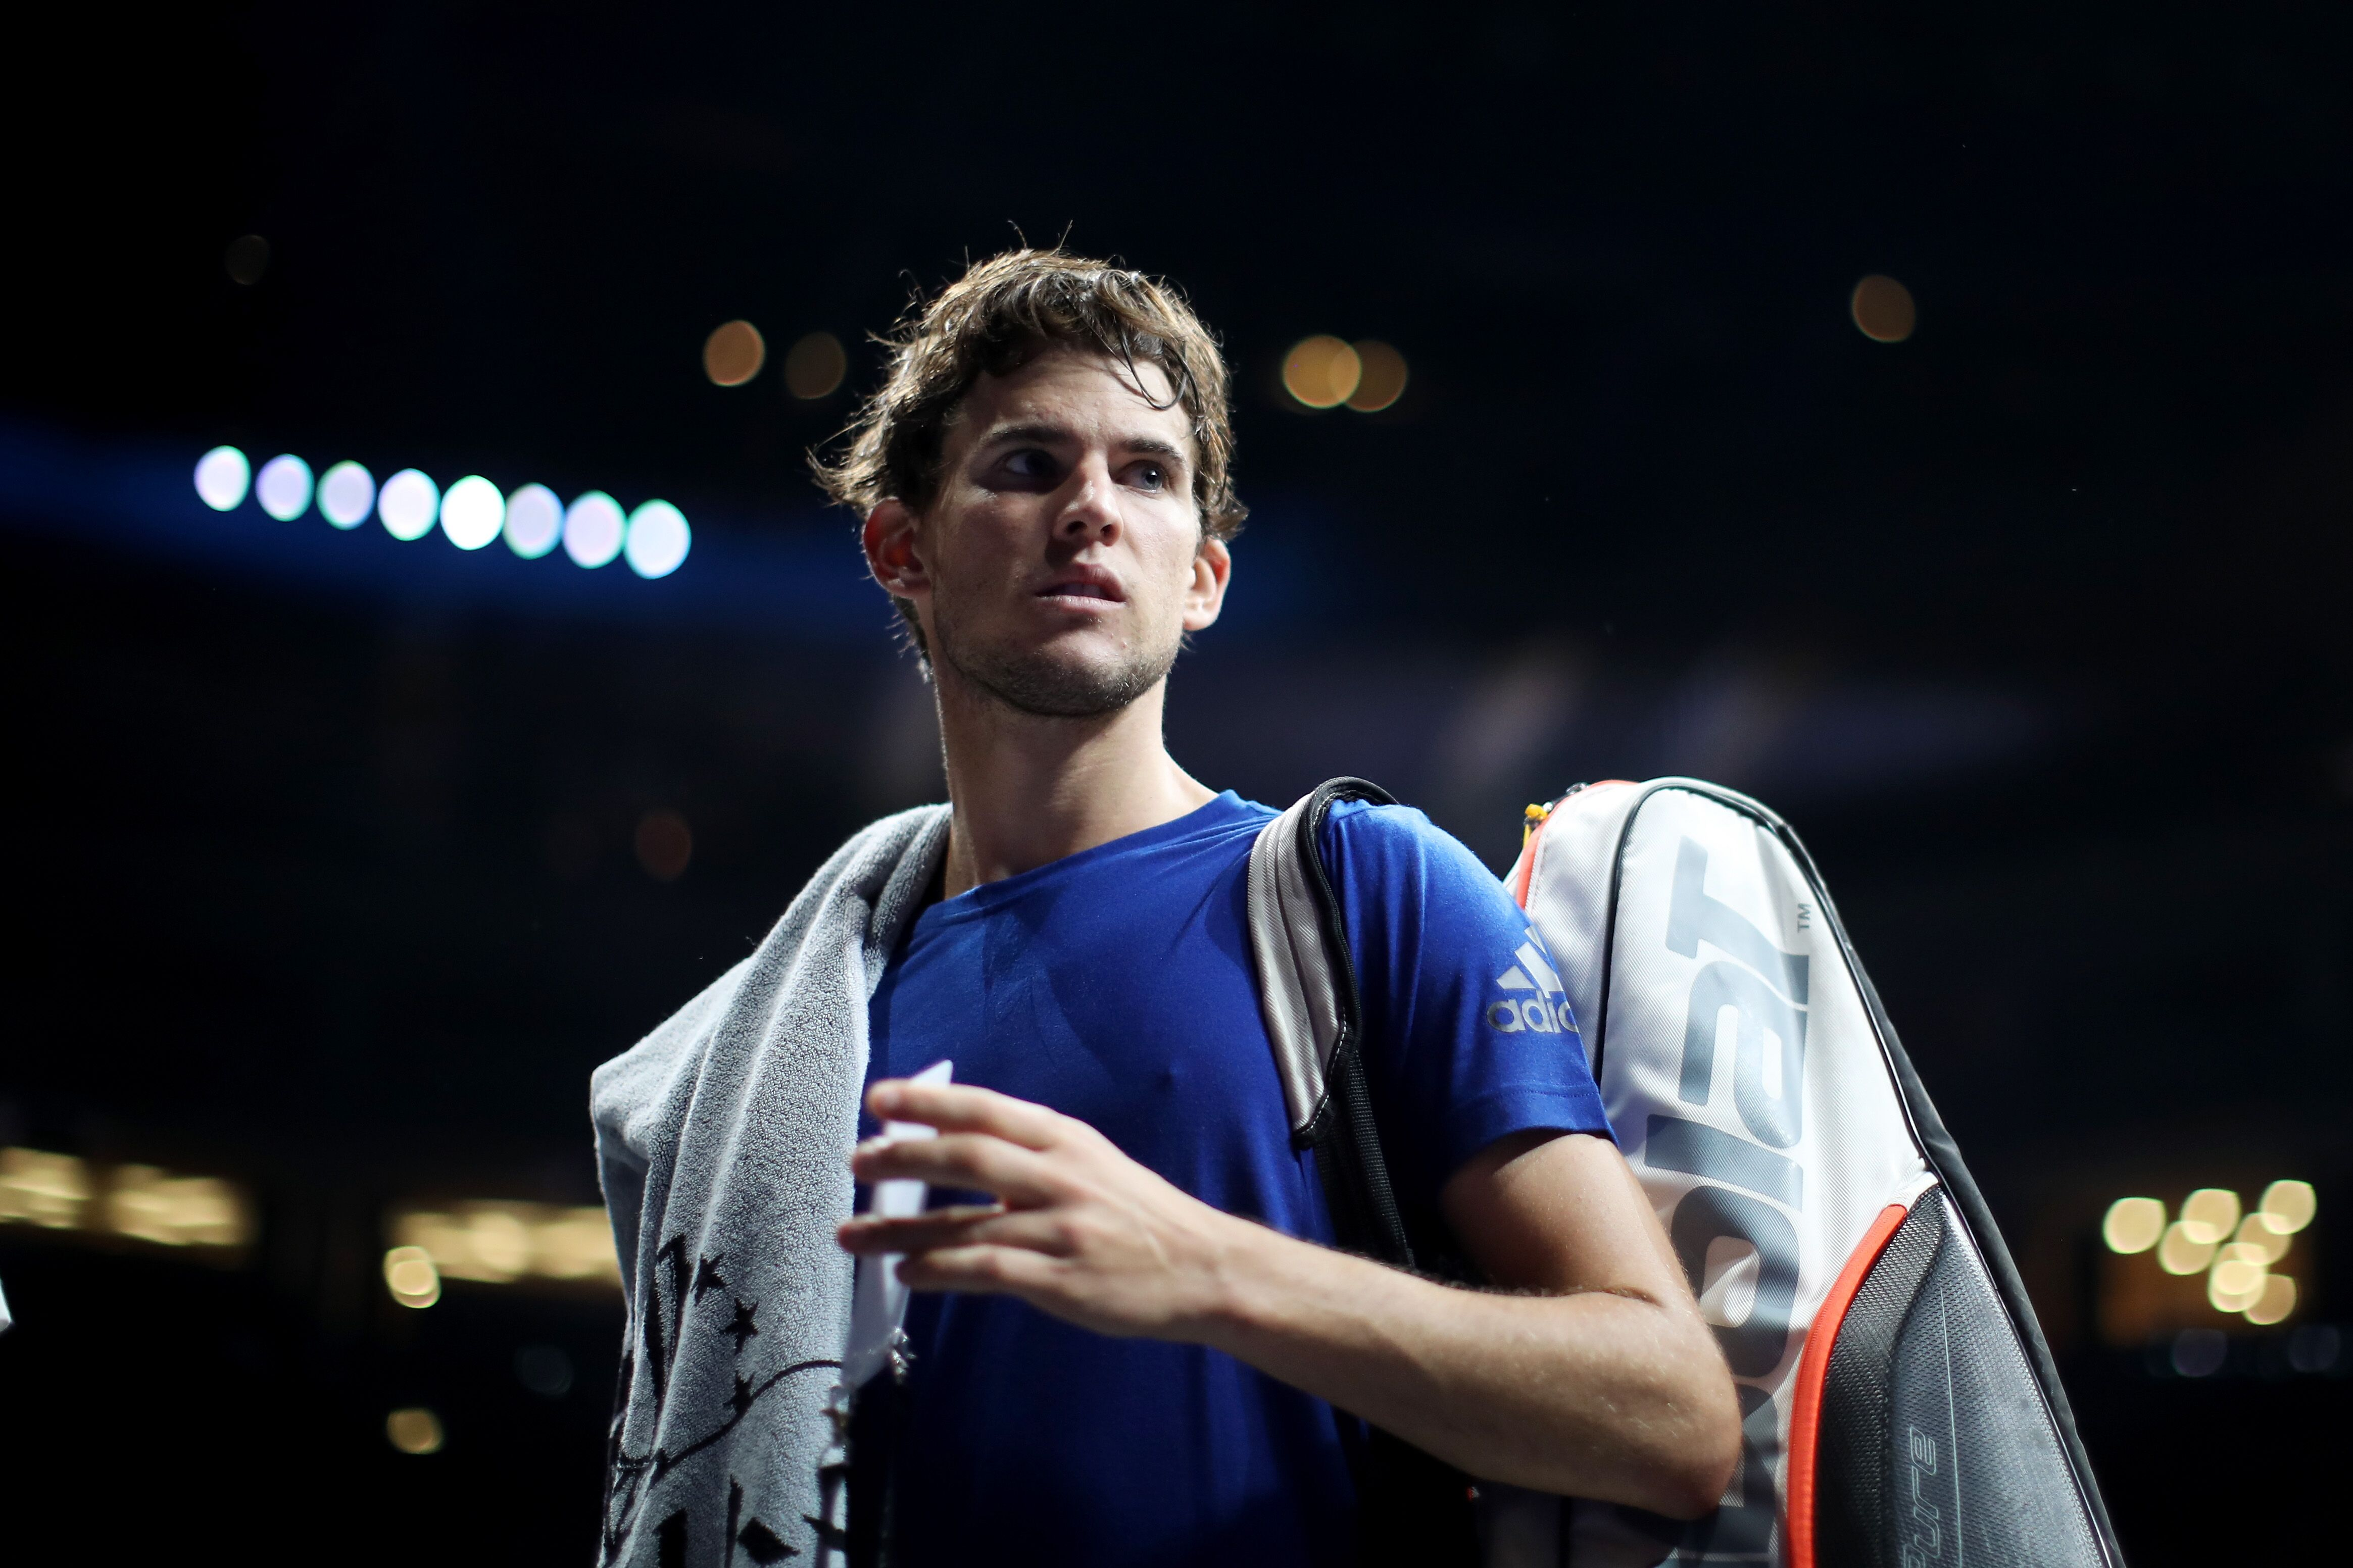 Dominic Thiem must rebound and qualify for 2017 ATP Finals